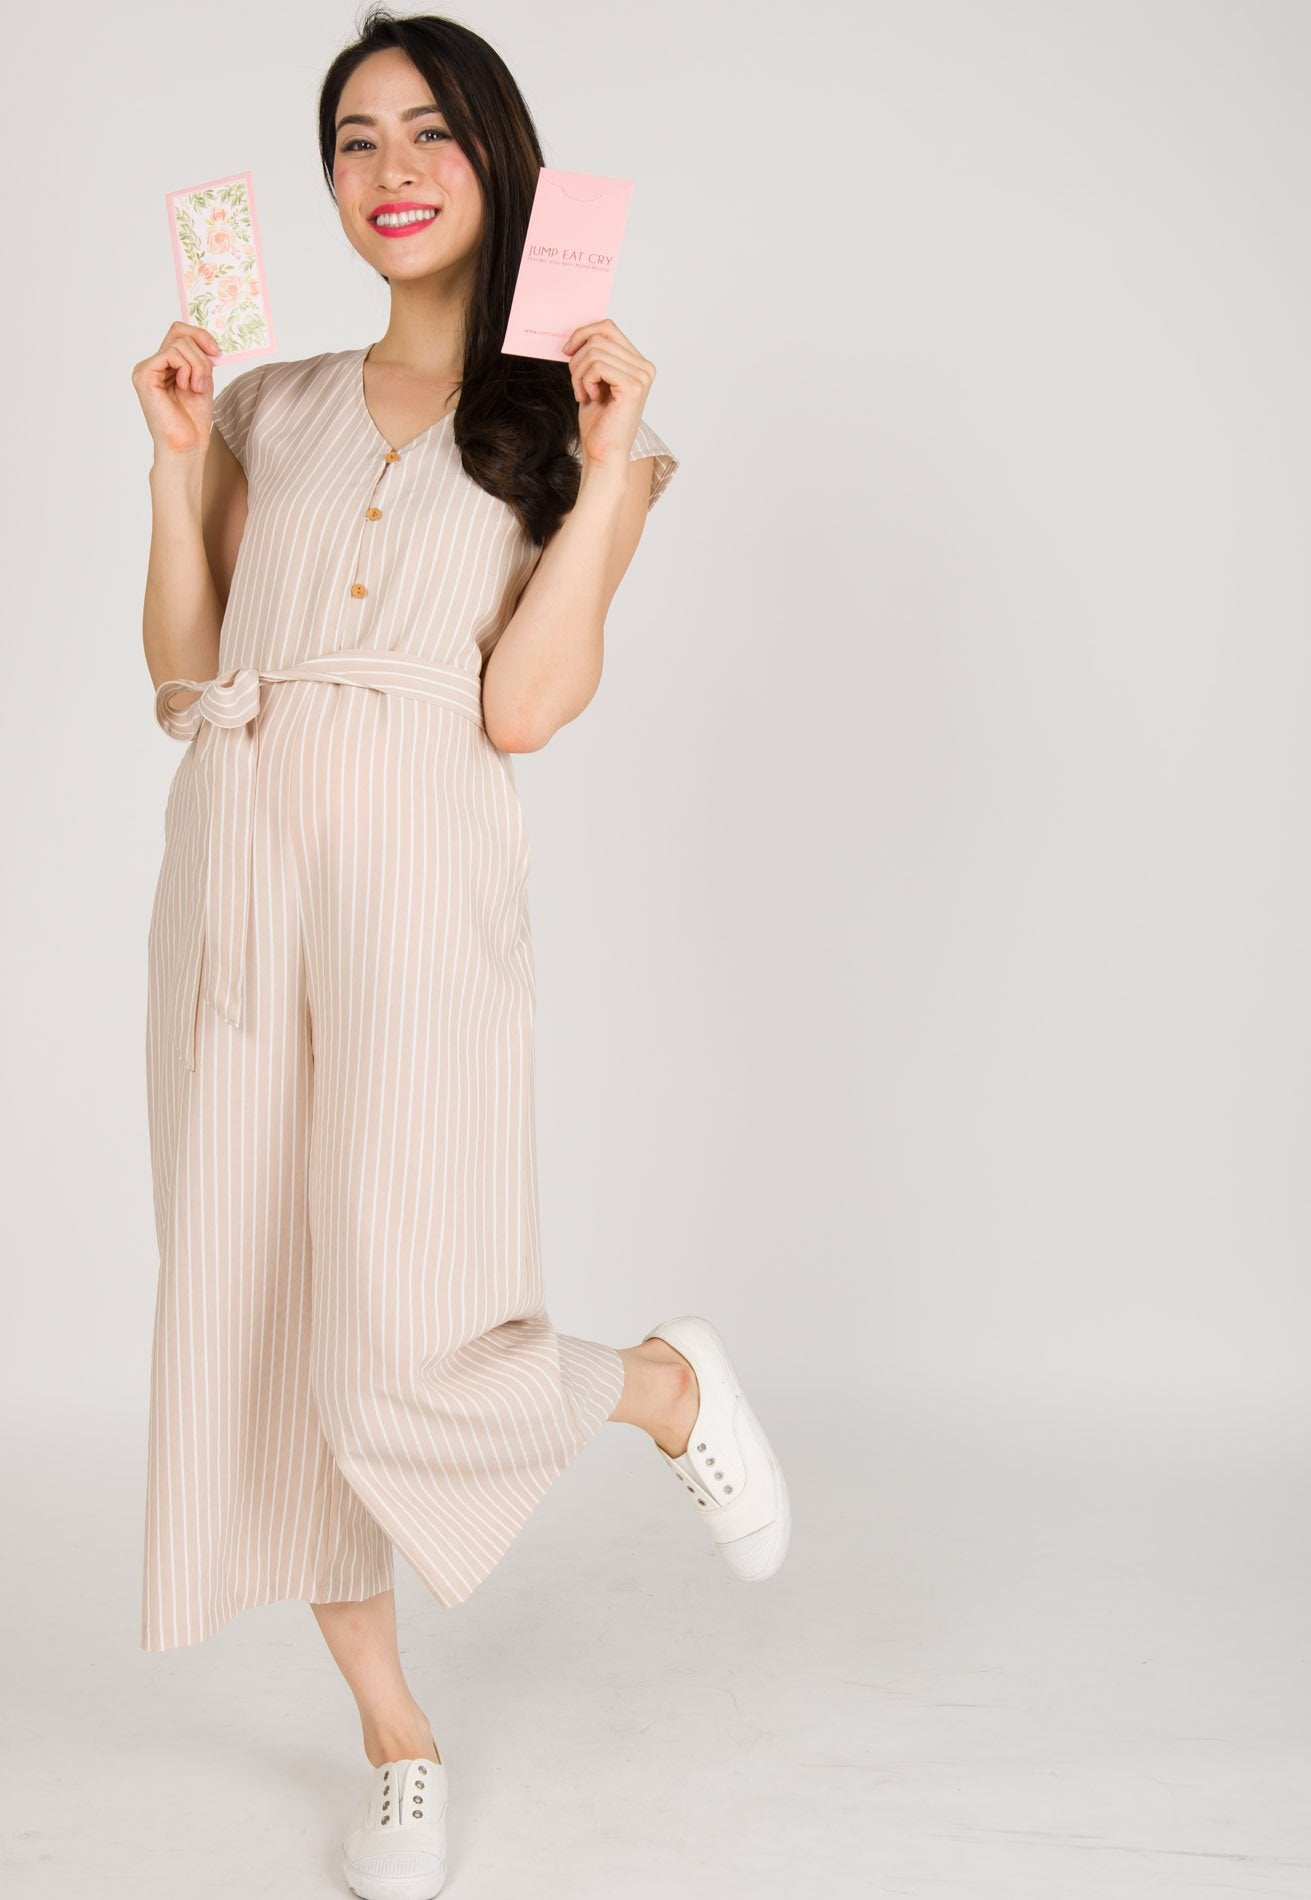 bbb87d0a12ef26 ... Fleur Button Down Nursing Jumpsuit in Nude by JumpEatCry - Maternity  and nursing wear ...